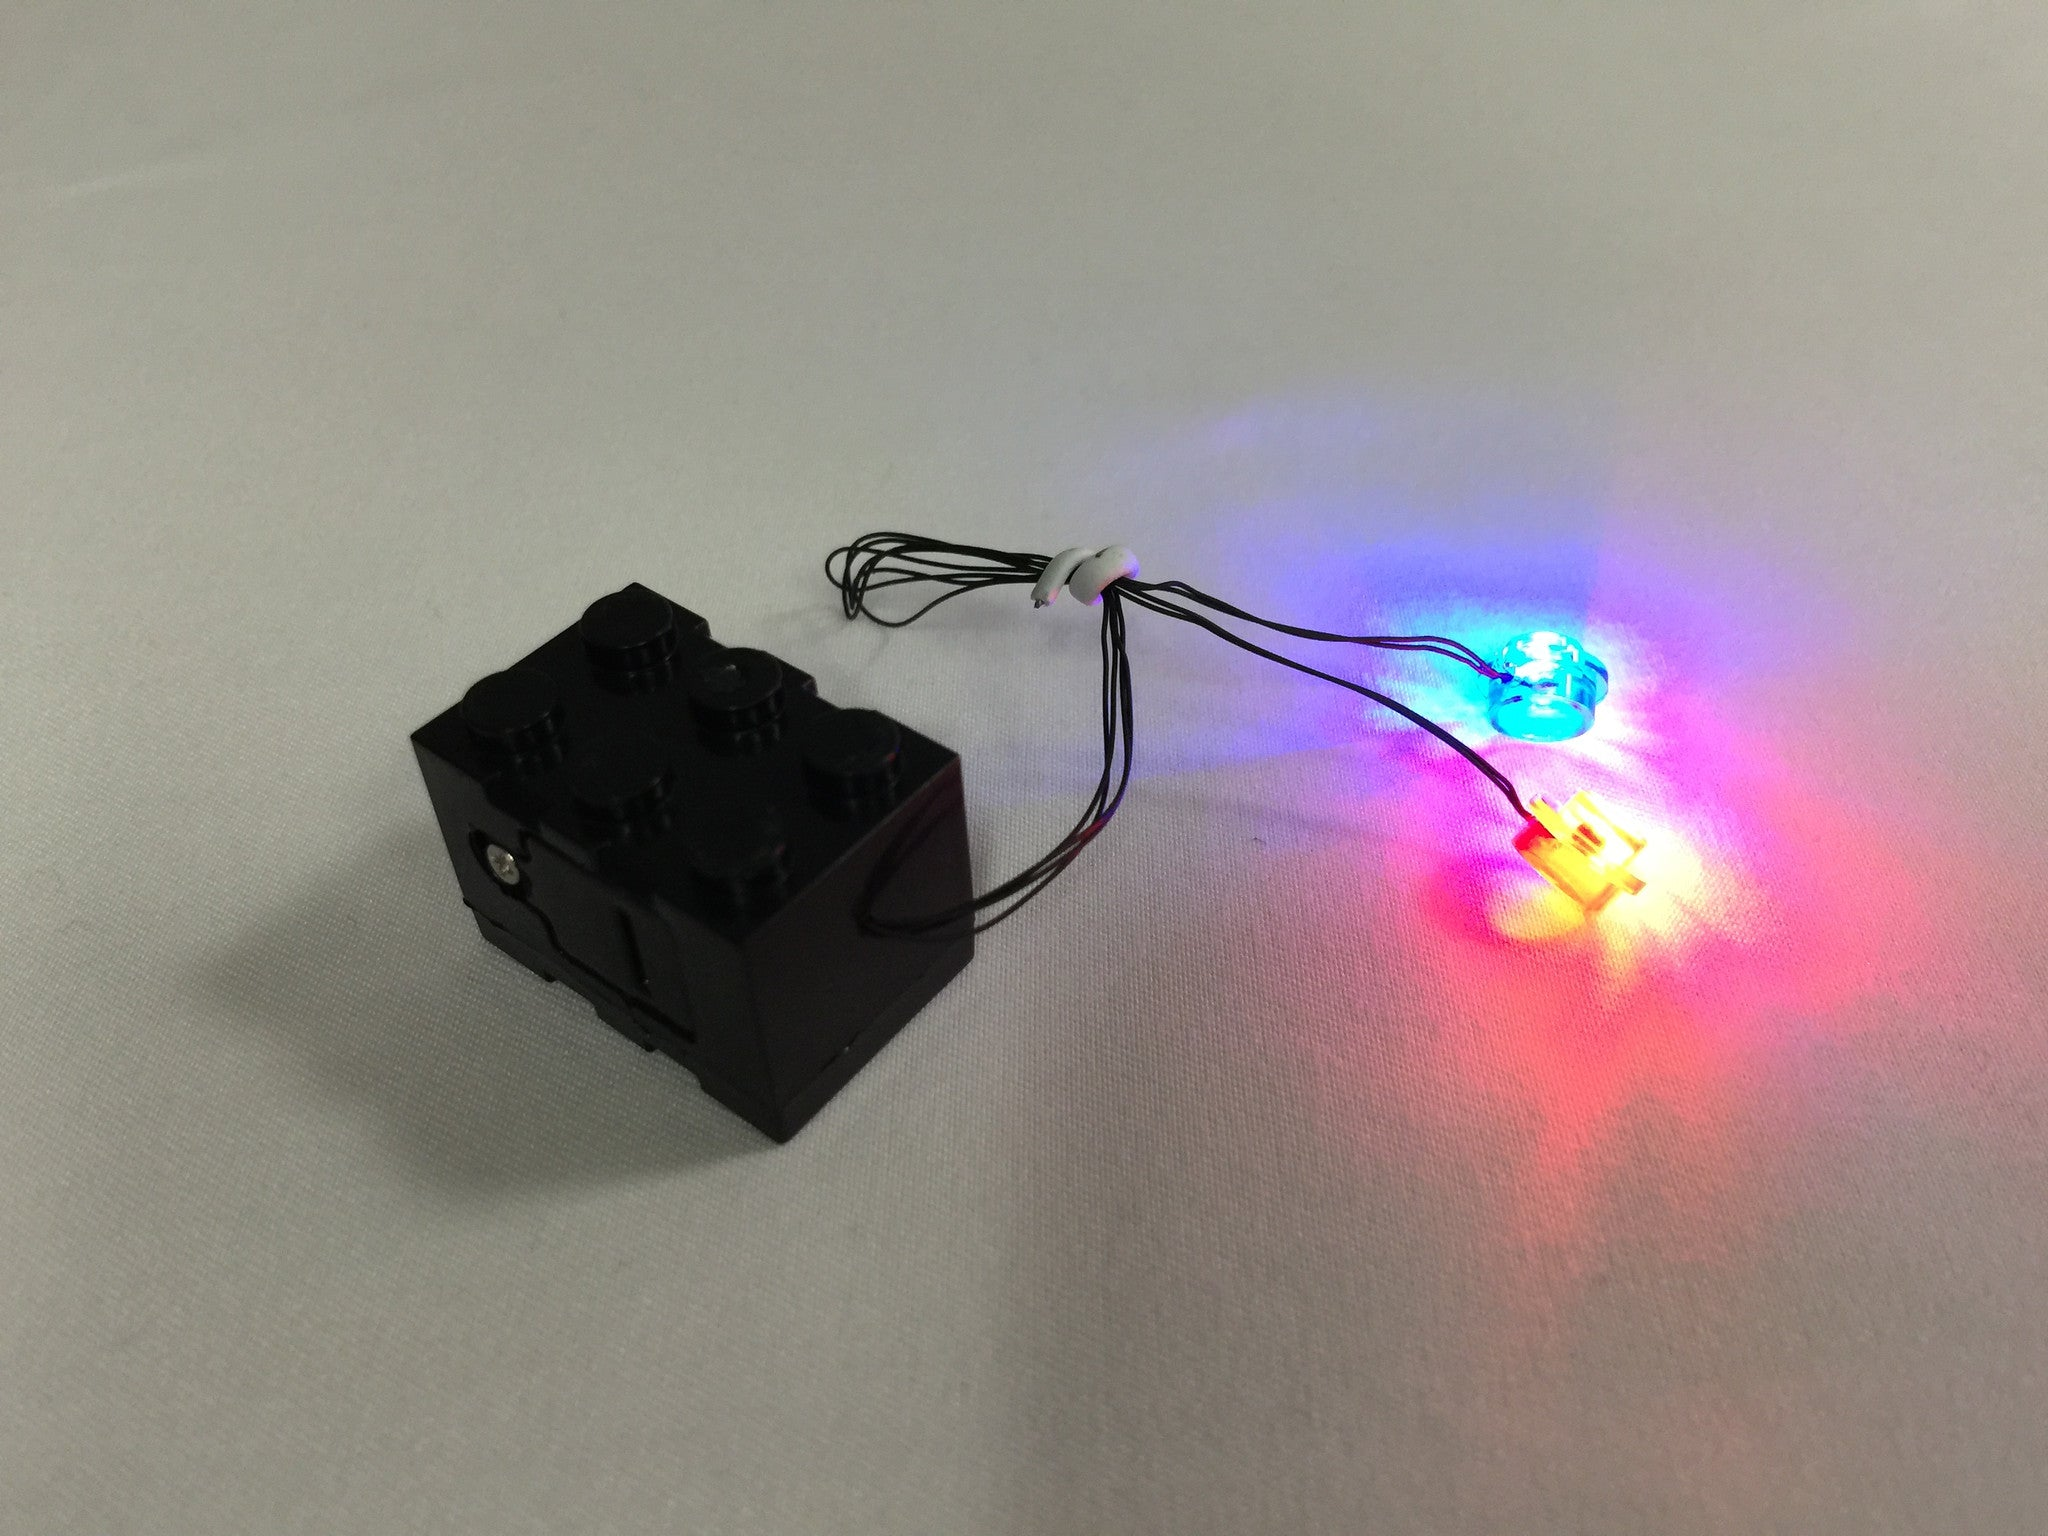 LED Double Blinking Red and Blue LEGO Studs with 2x3 Battery Brick